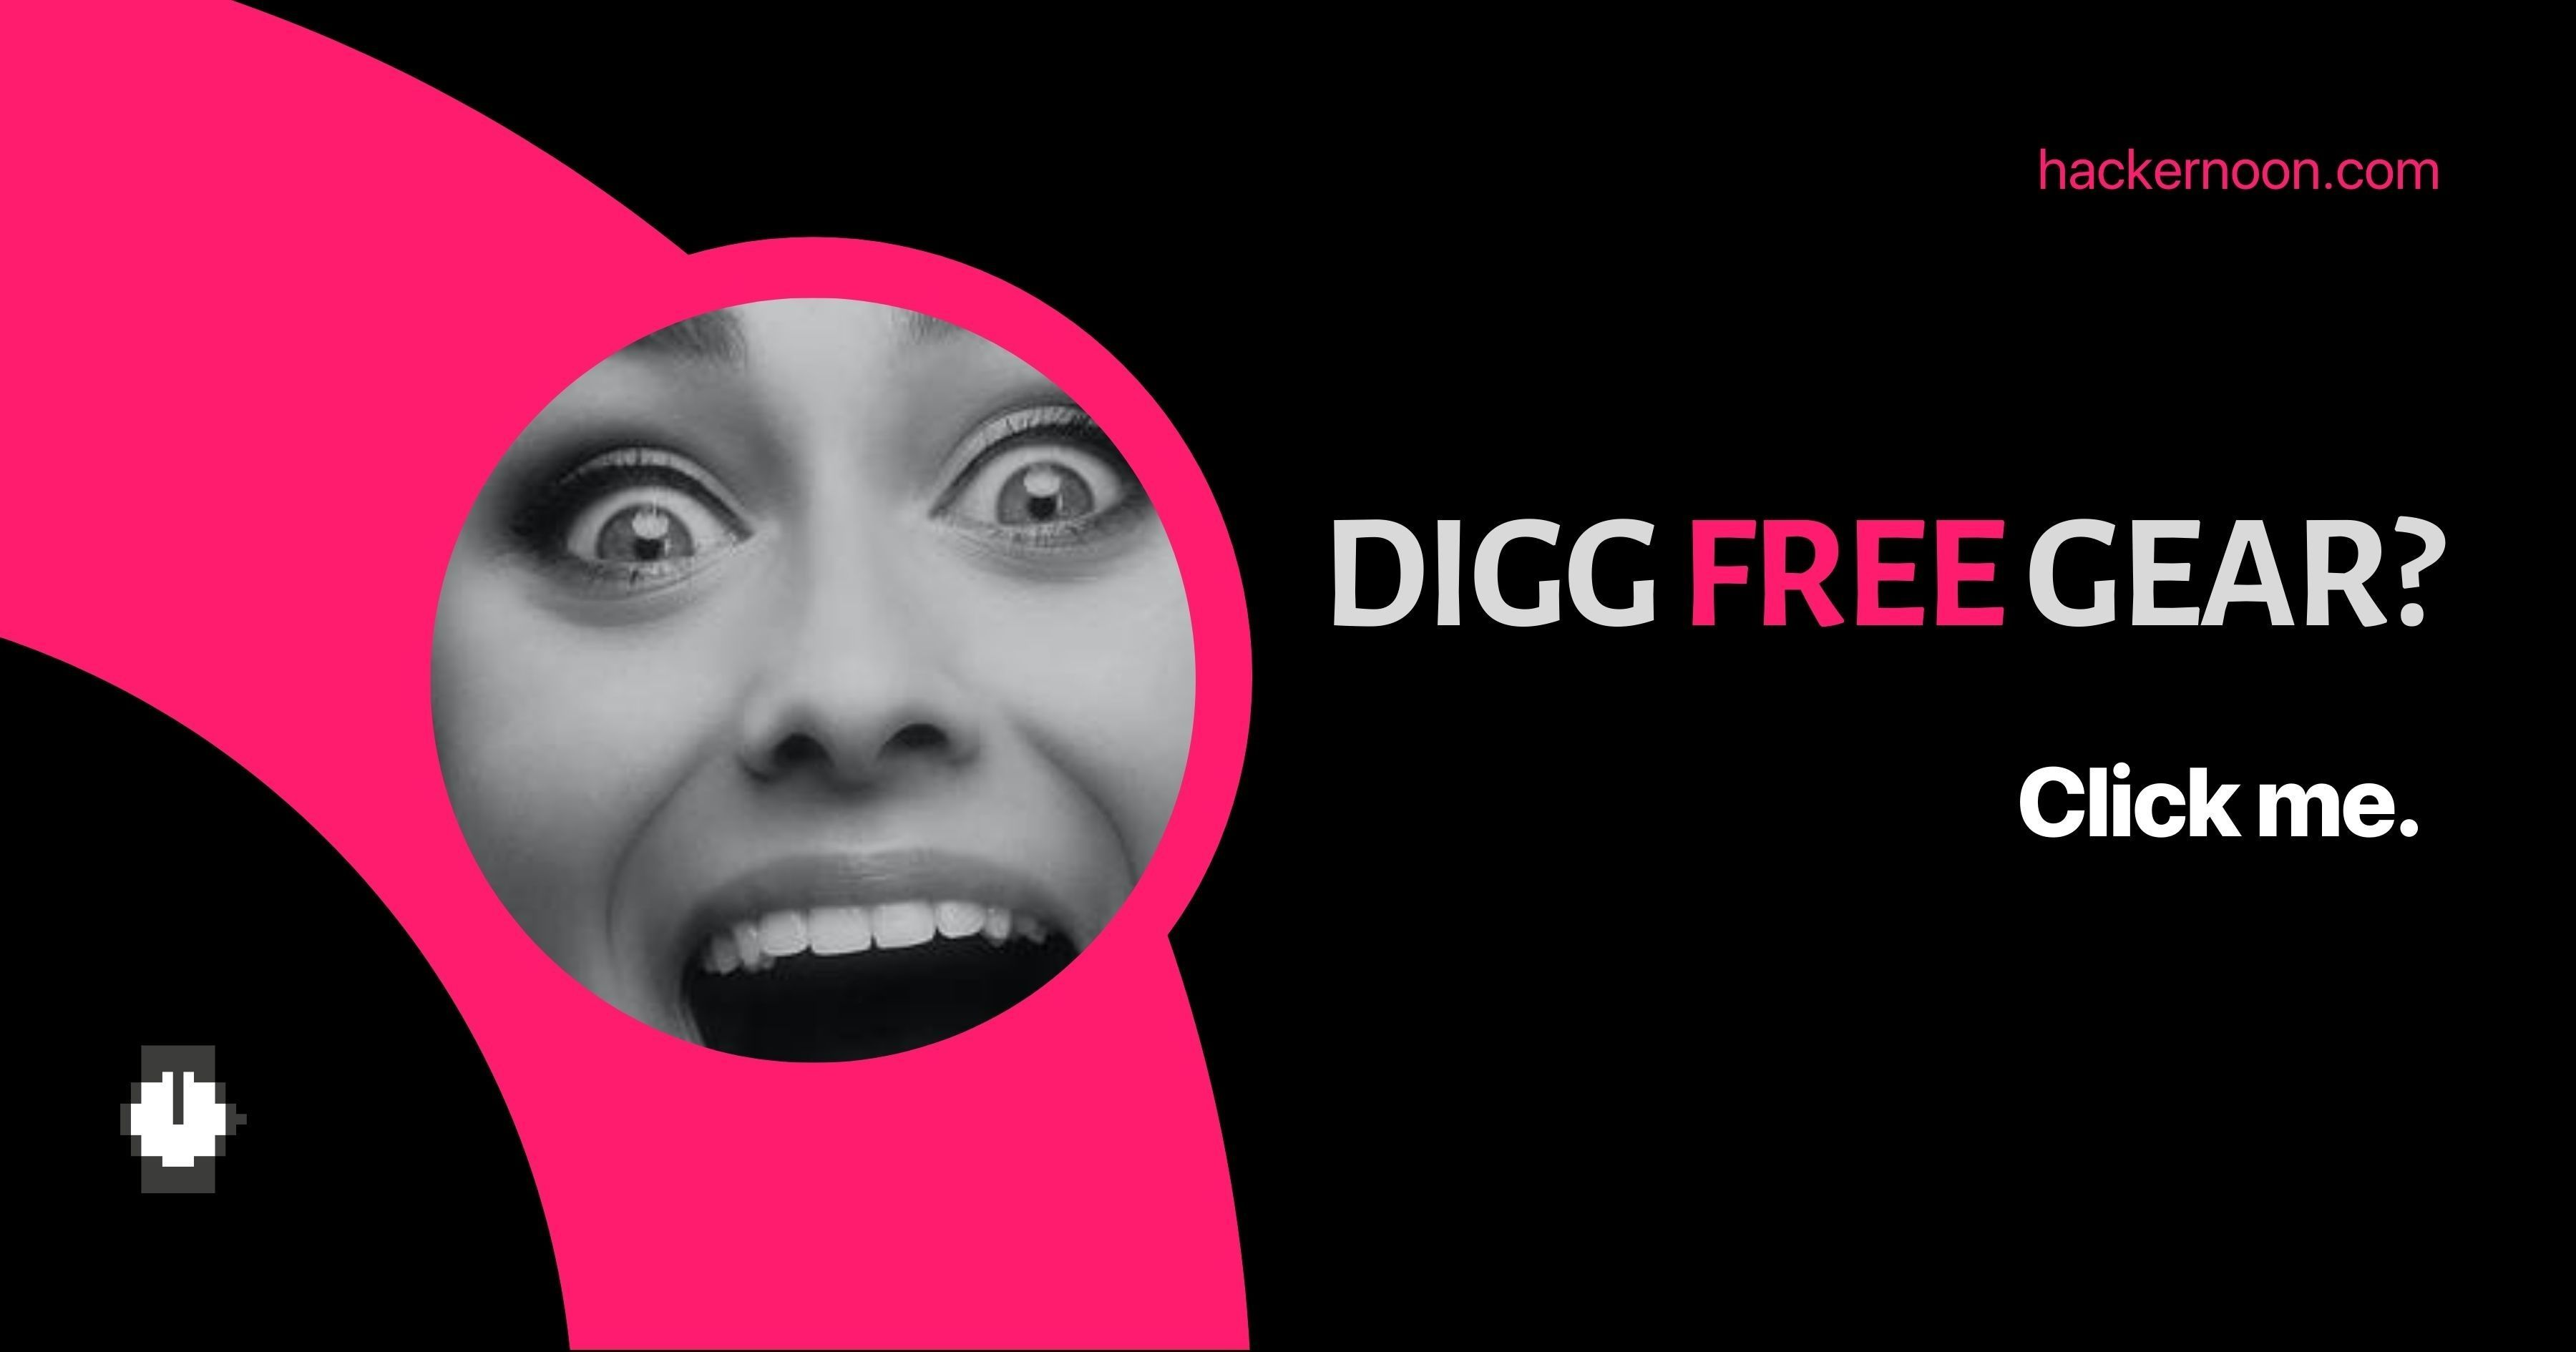 /digg-free-gear-a-thank-you-contest-by-hackernoon-djk3789 feature image